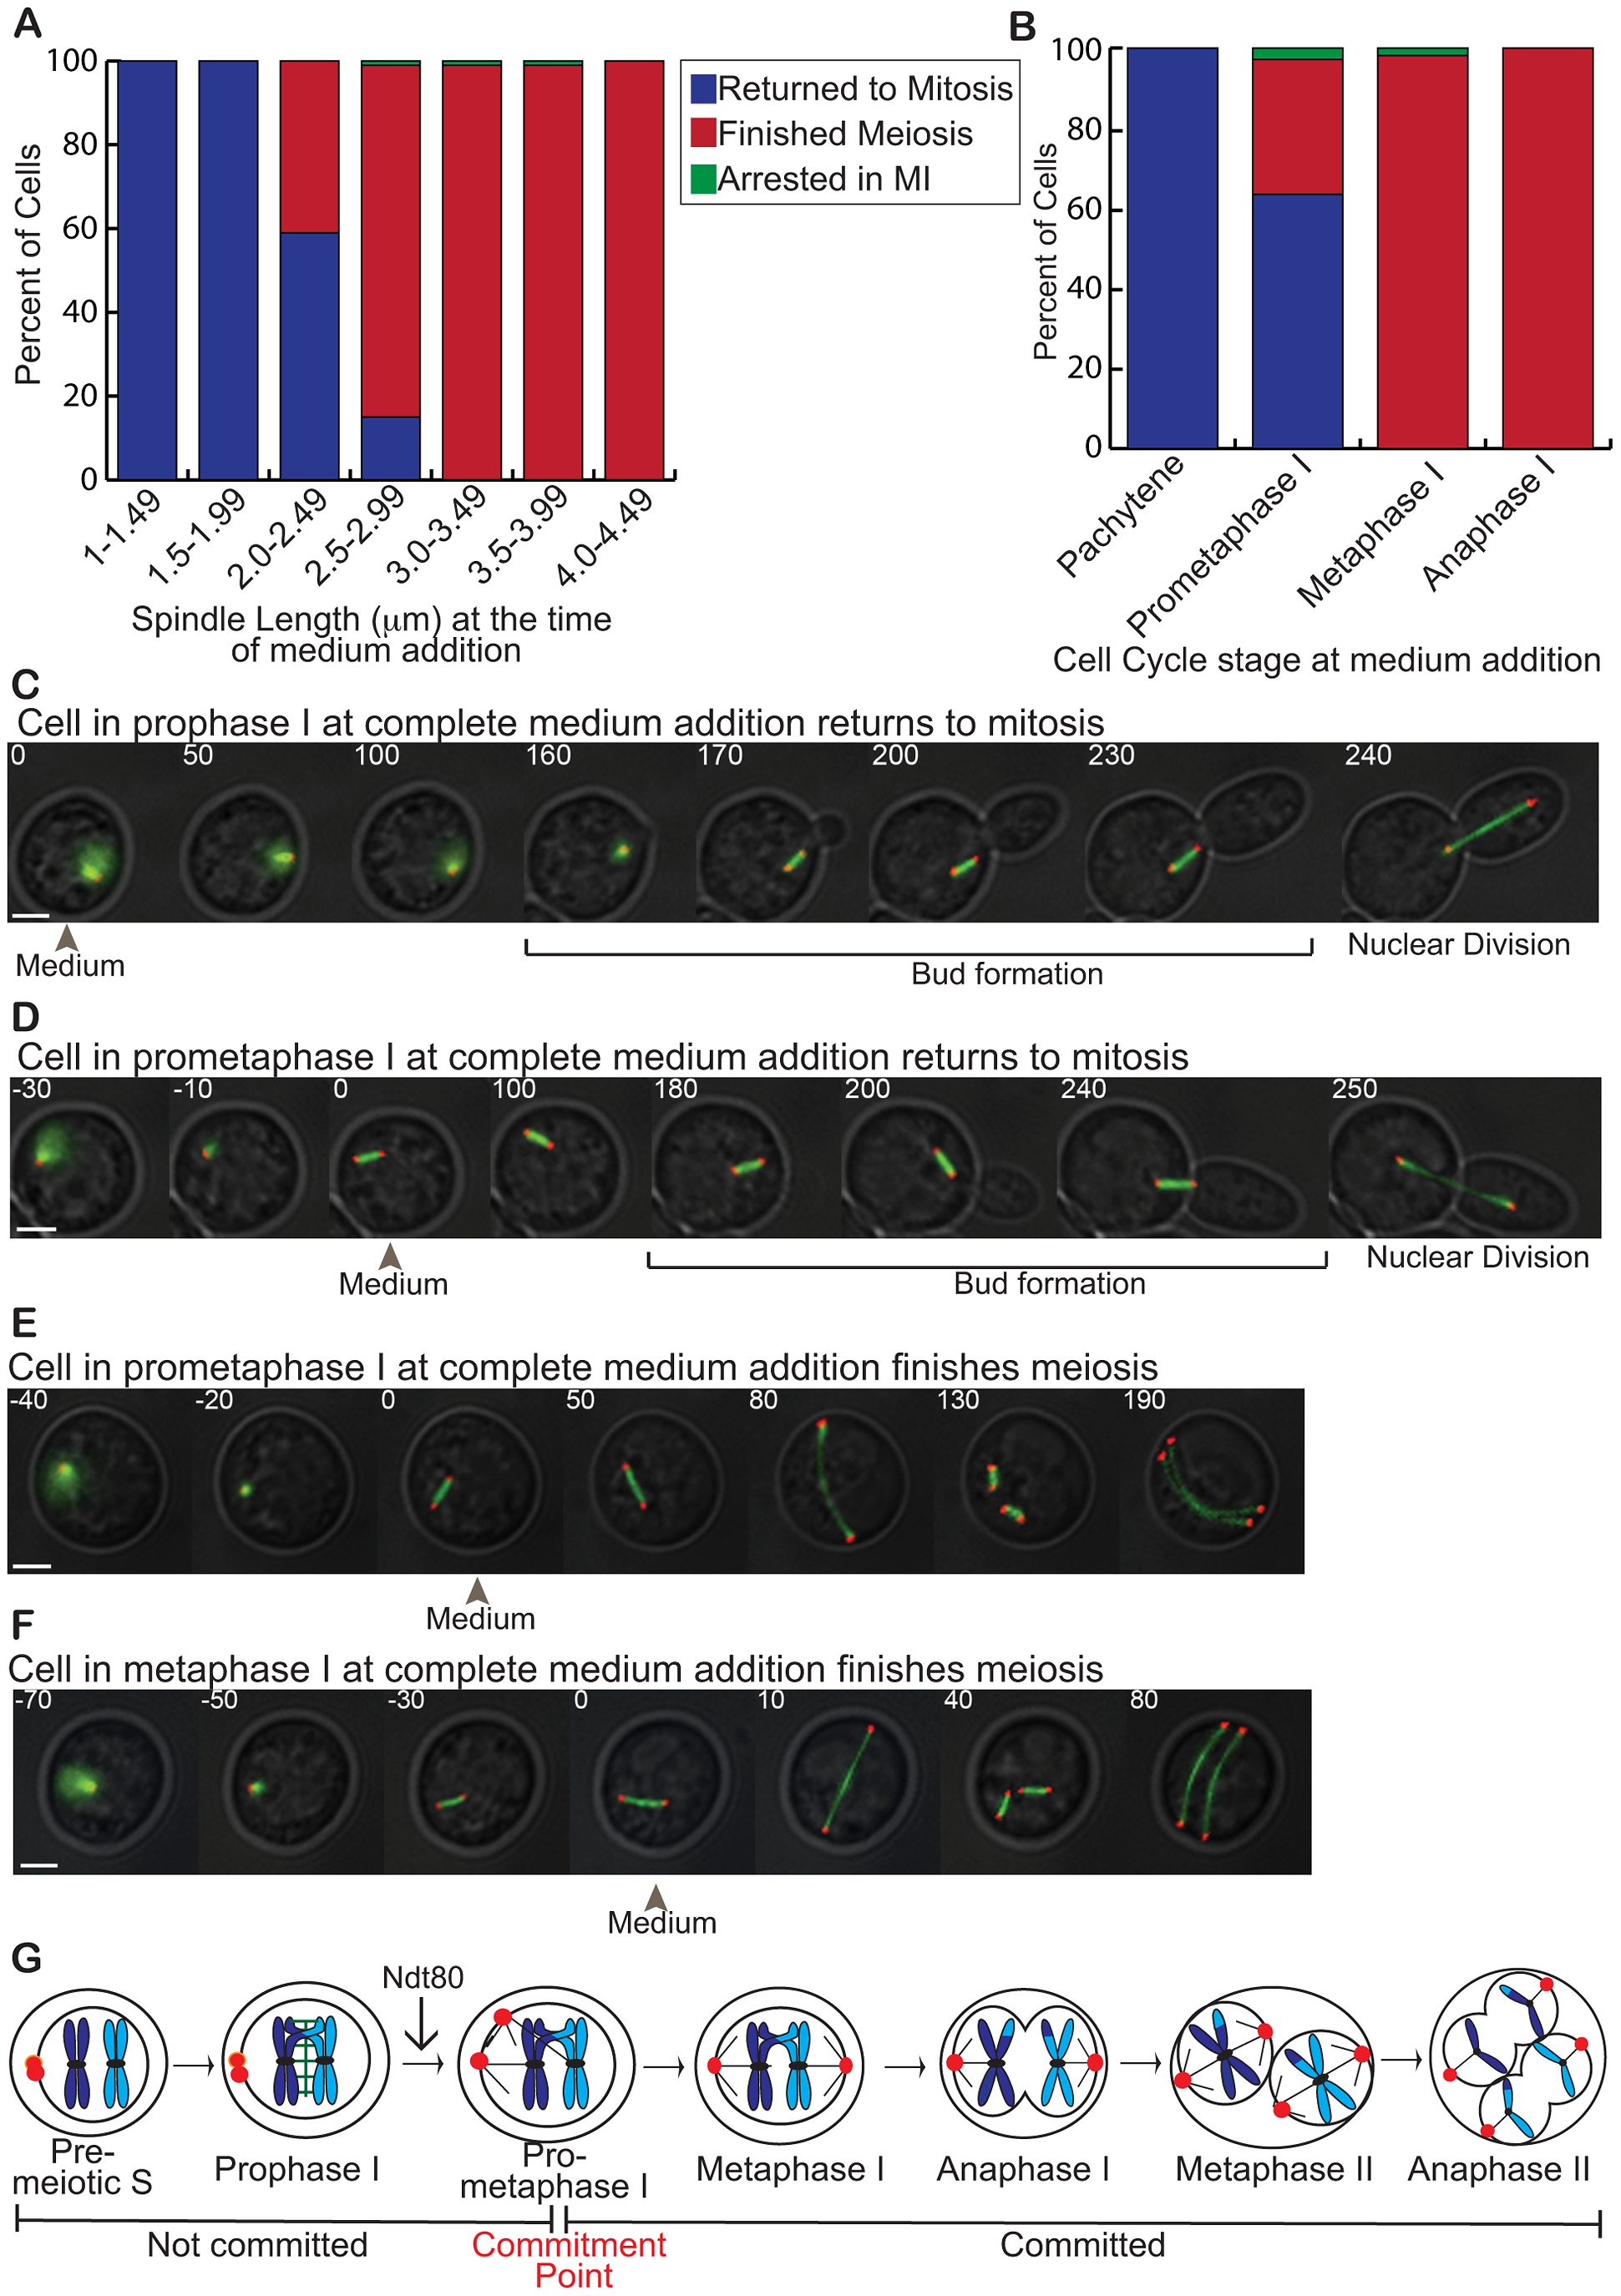 The meiotic commitment point occurs in prometaphase I.